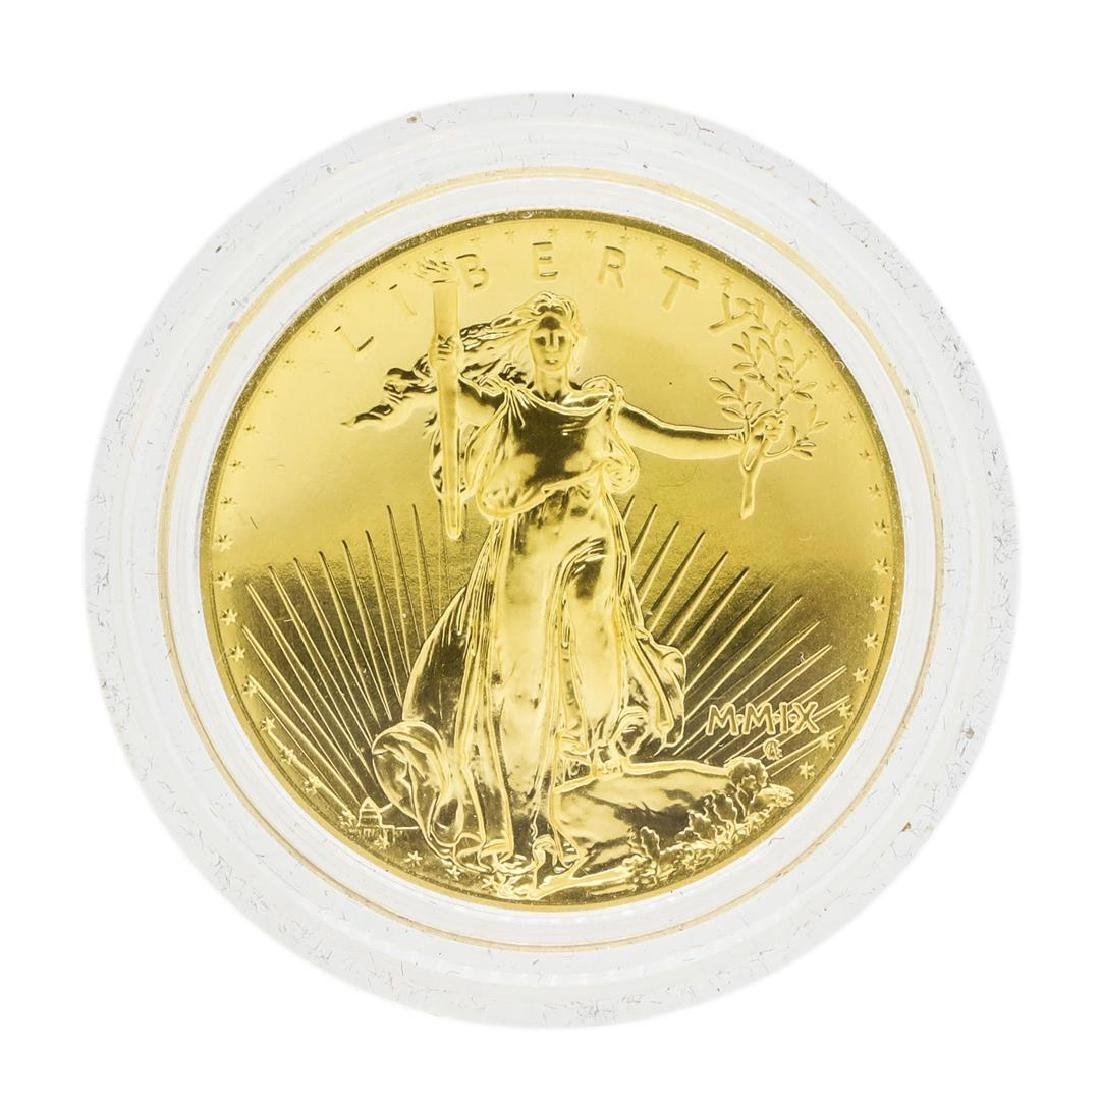 2009 $20 Ultra High Relief Double Eagle Gold Coin w/Box - 2